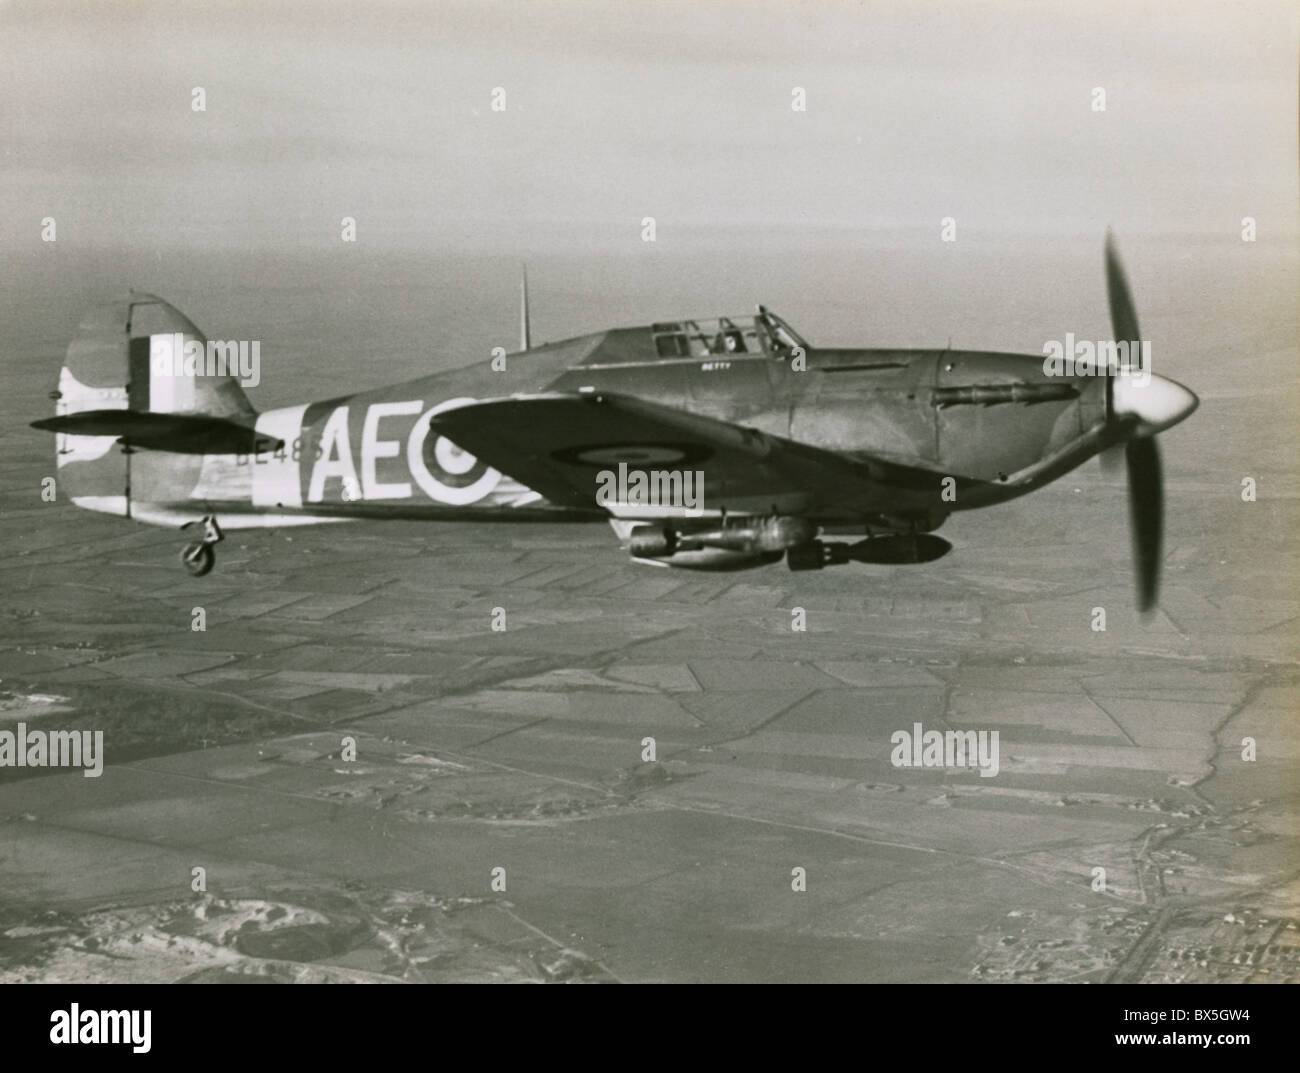 events, Second World War / WWII, aerial warfare, aircraft, British fighter Hawker Hurricane, fighter-bomber version - Stock Image